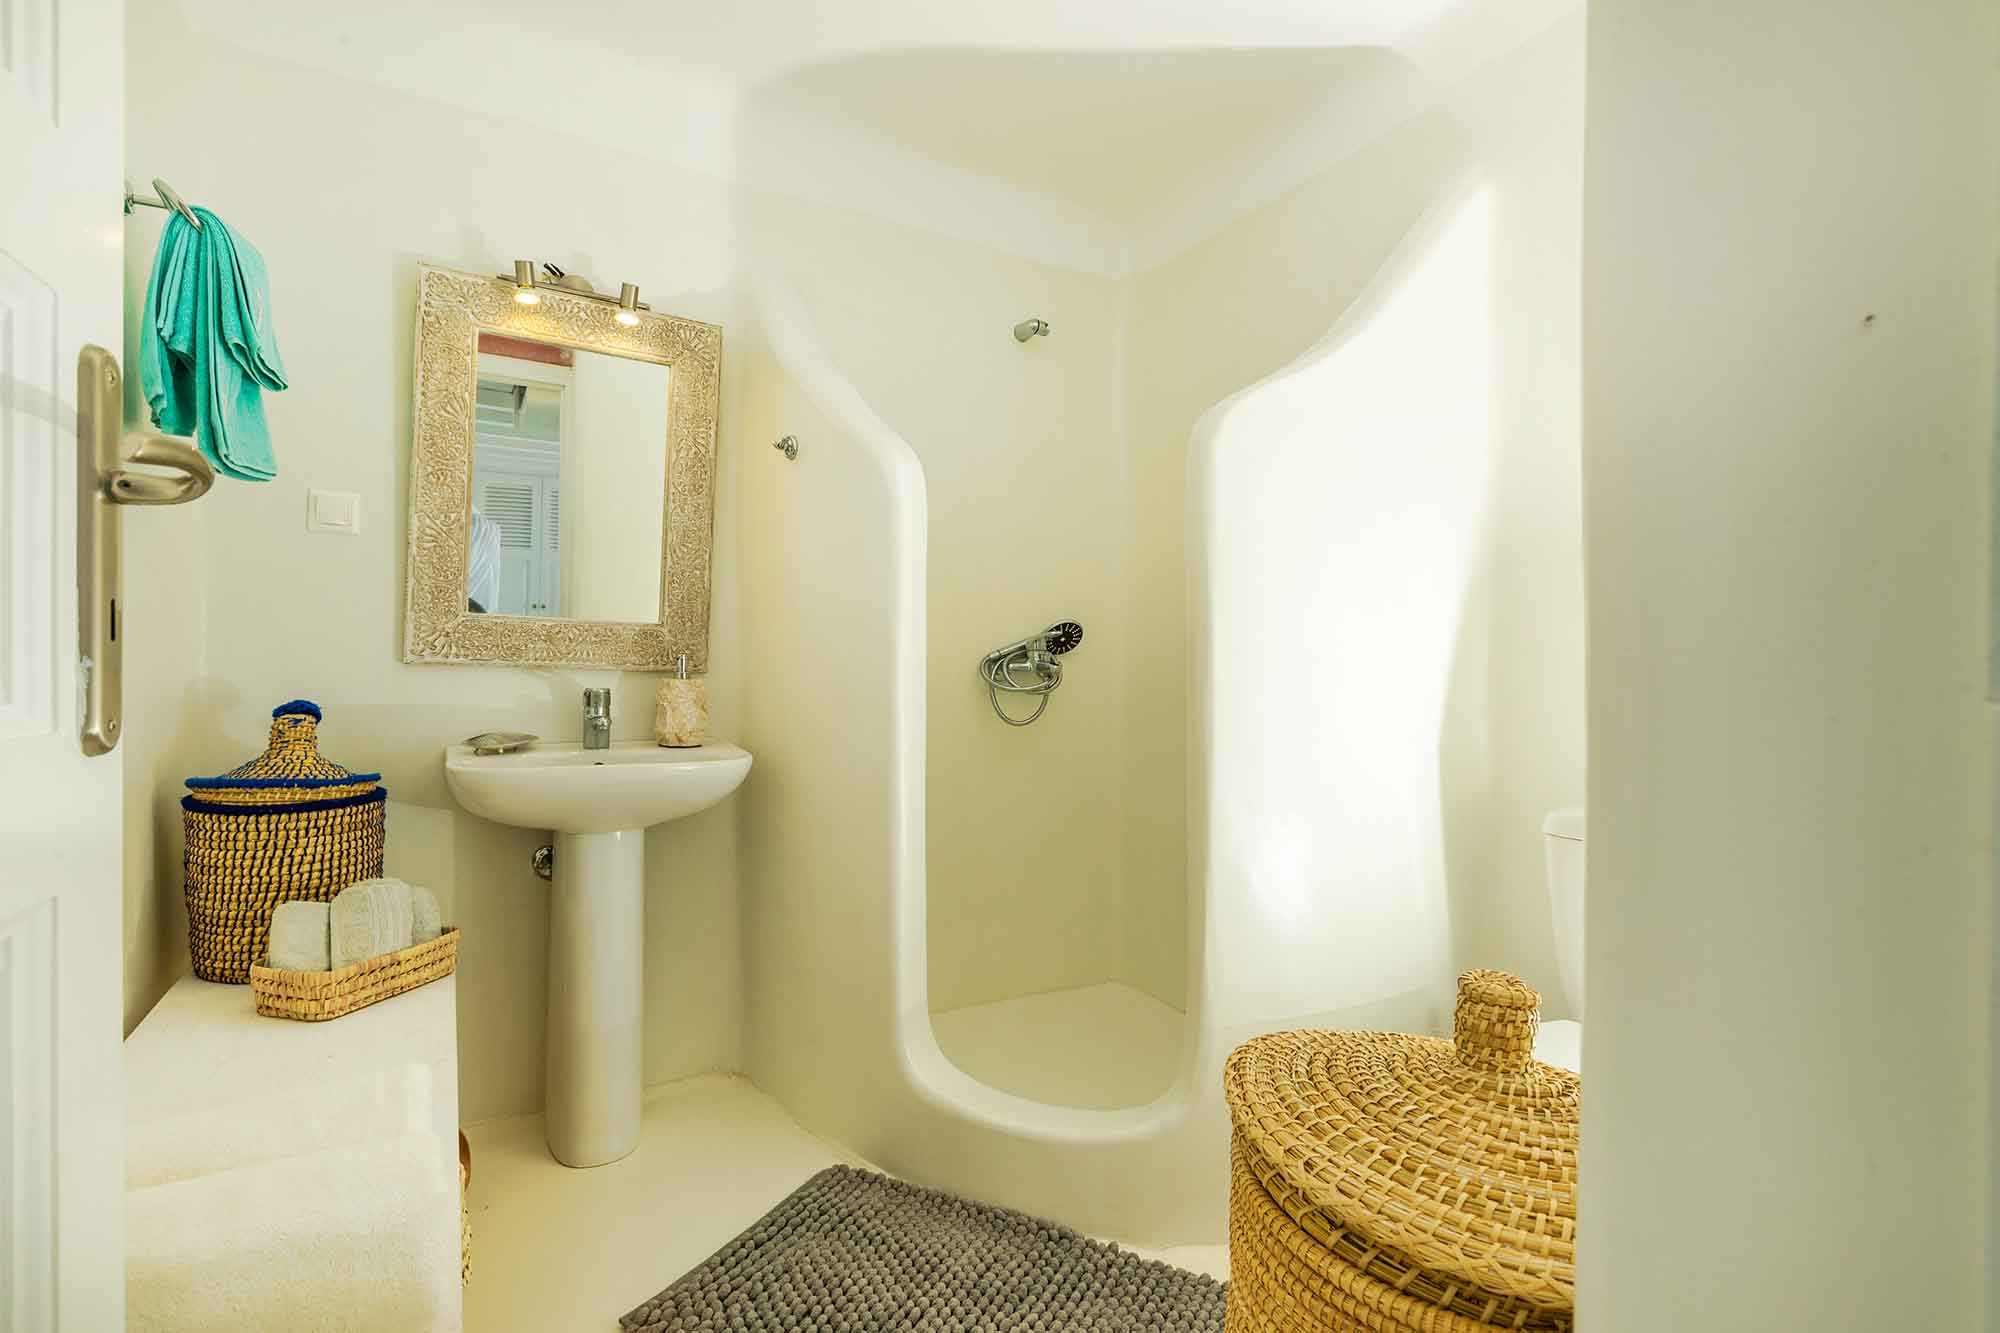 RENT A LUXURIOUS VILLA BY THE SEA IN MYKONOS - VILLA KARKOS - shower